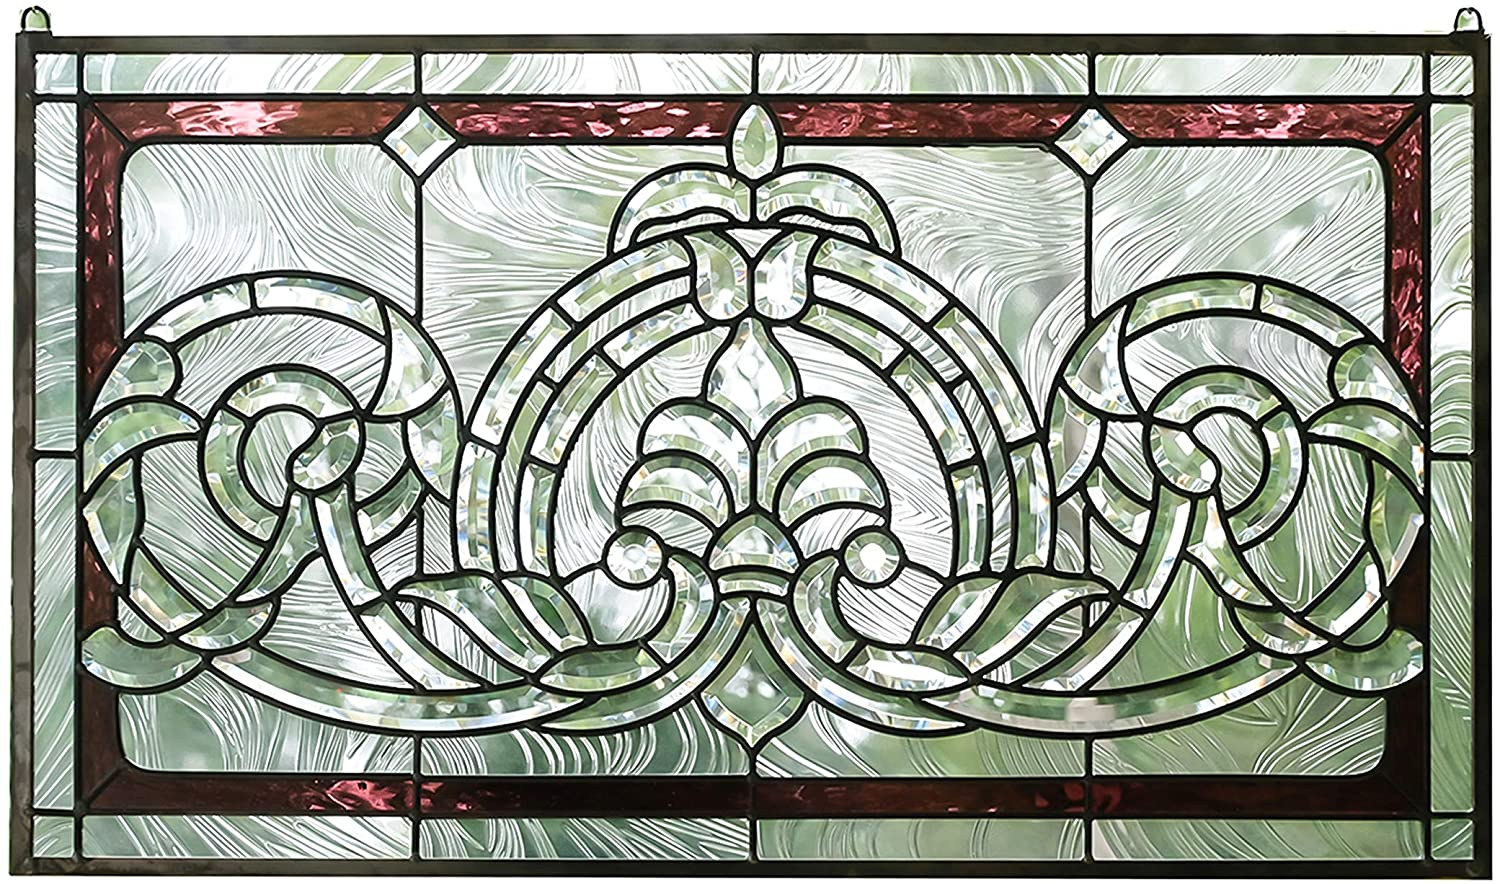 HANDCRAFTED STAINED GLASS CLEAR BEVELED WINDOW PANEL 34 W X 20 H